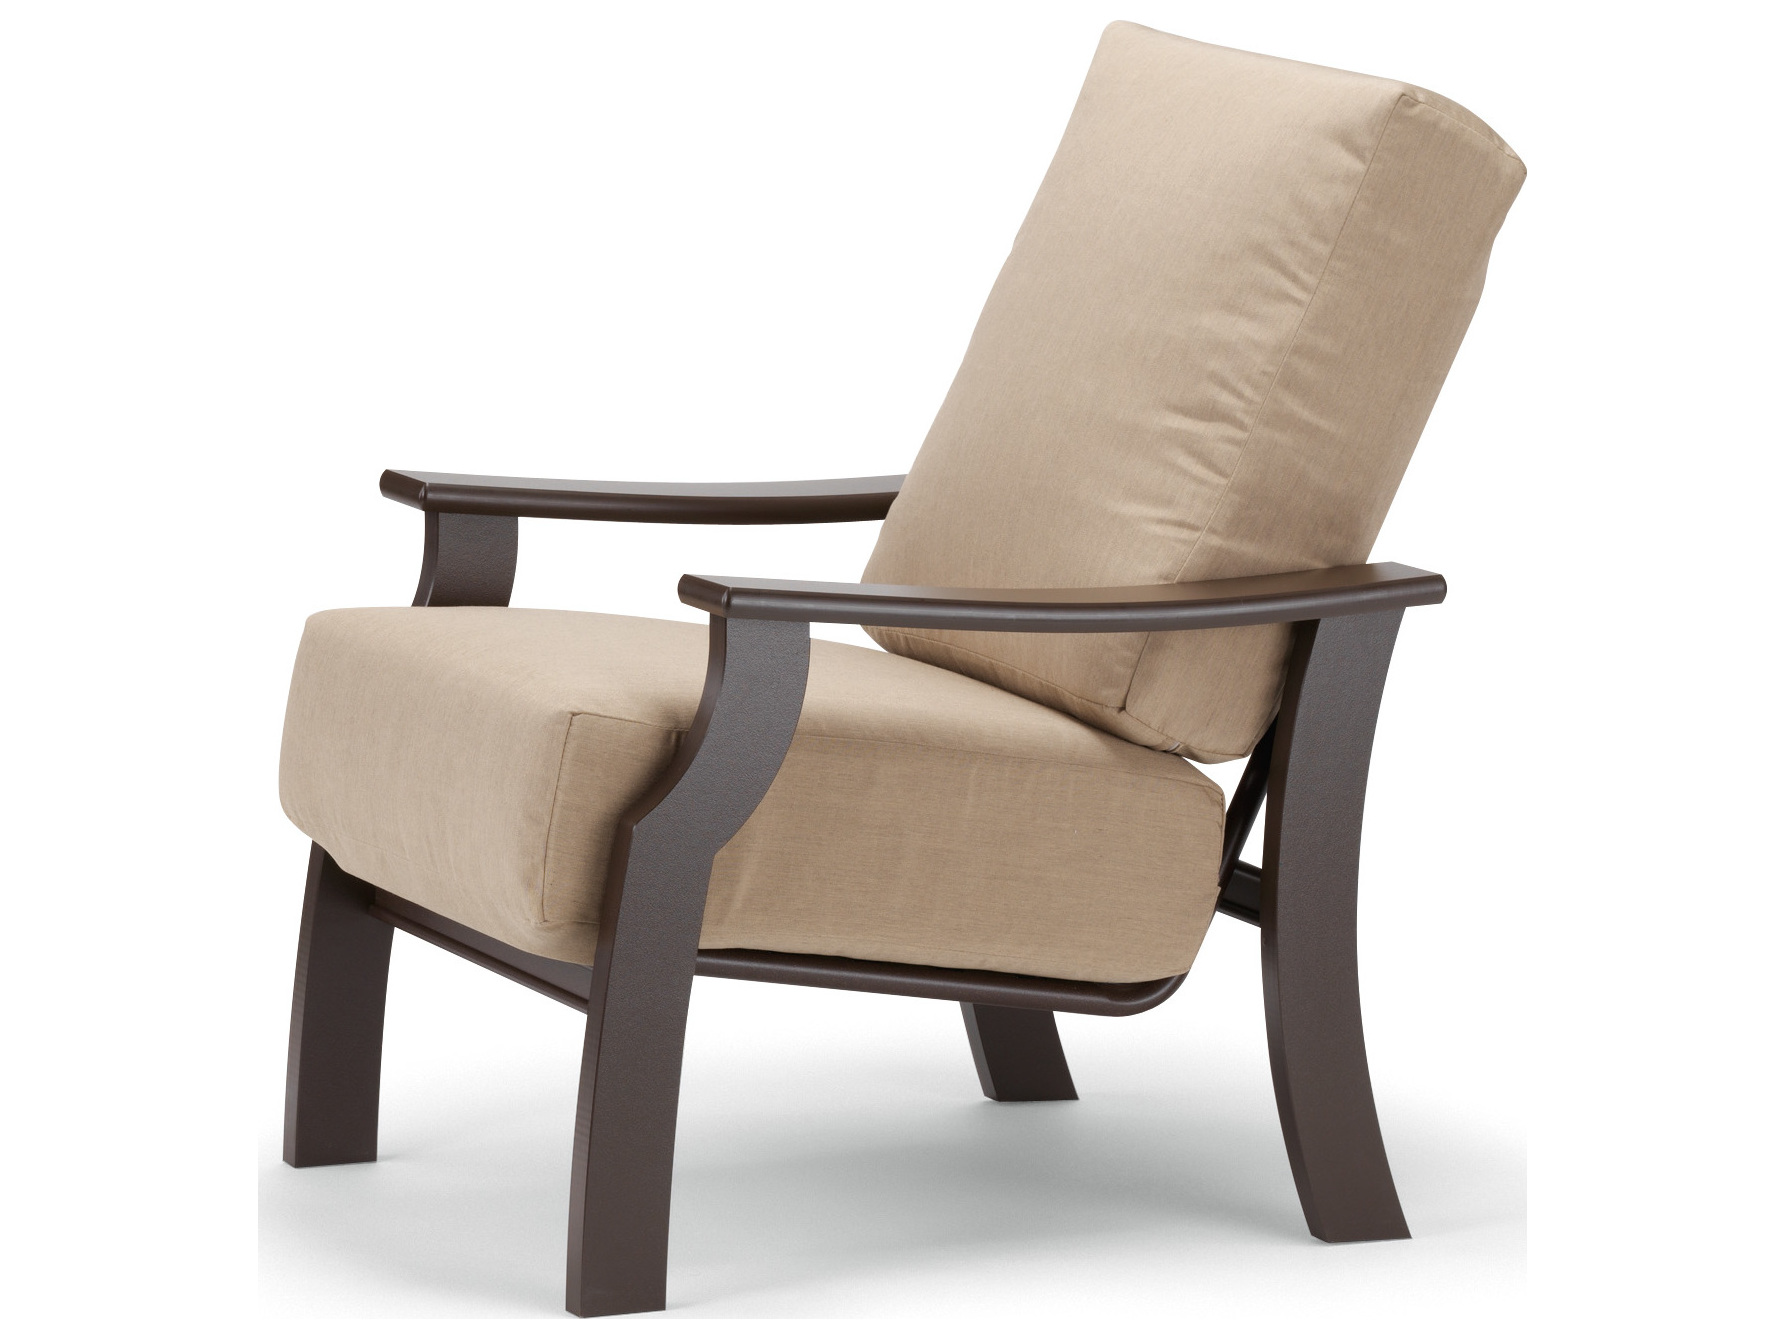 plastic lounge chair rentals houston telescope casual st catherine mgp cushion recycled